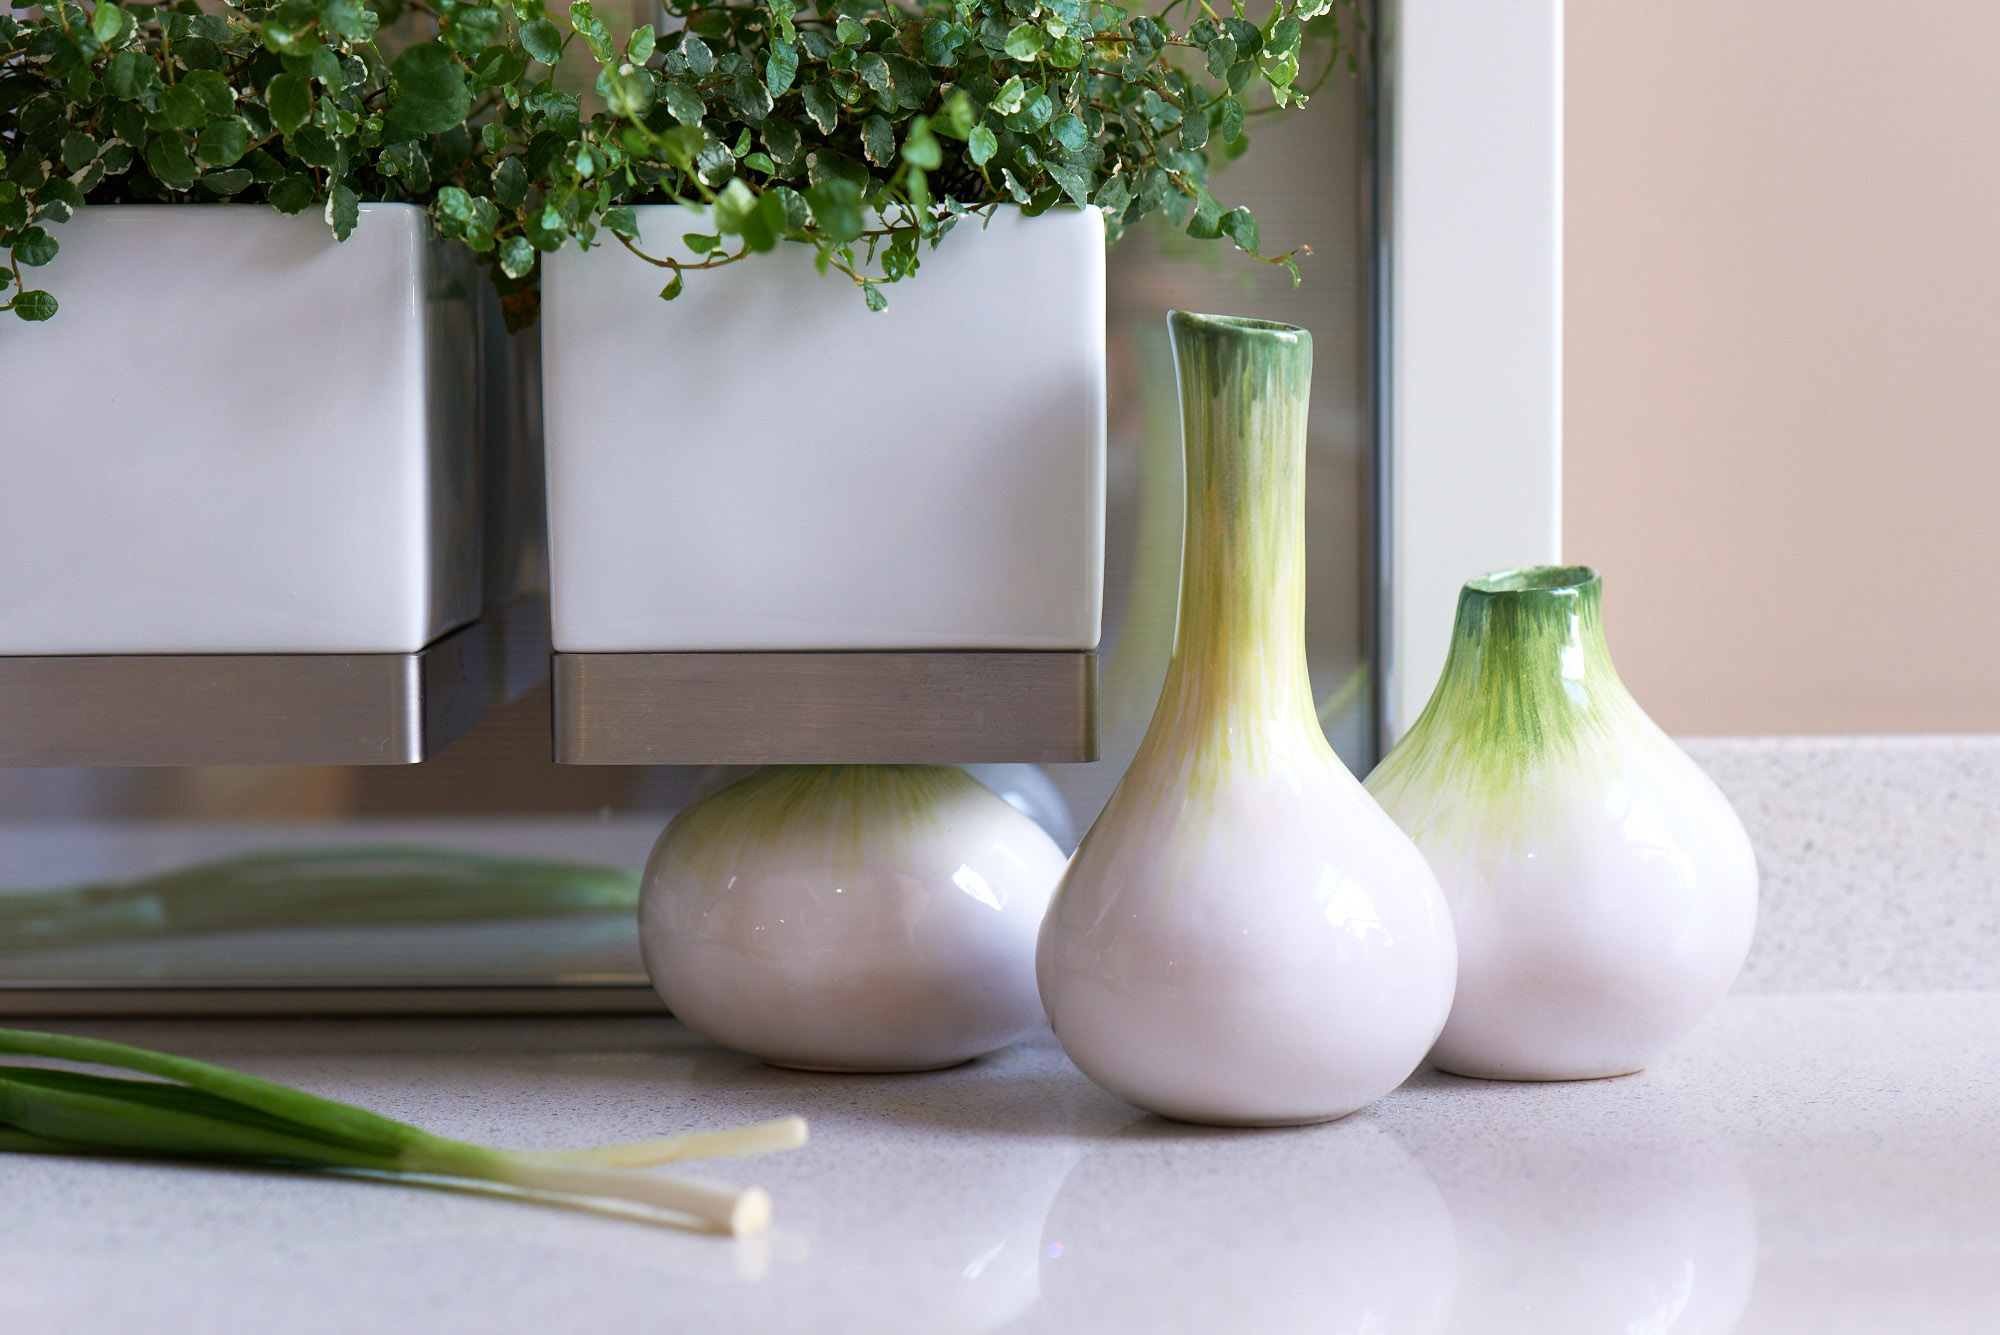 AMAI_product_vases Onion (1)